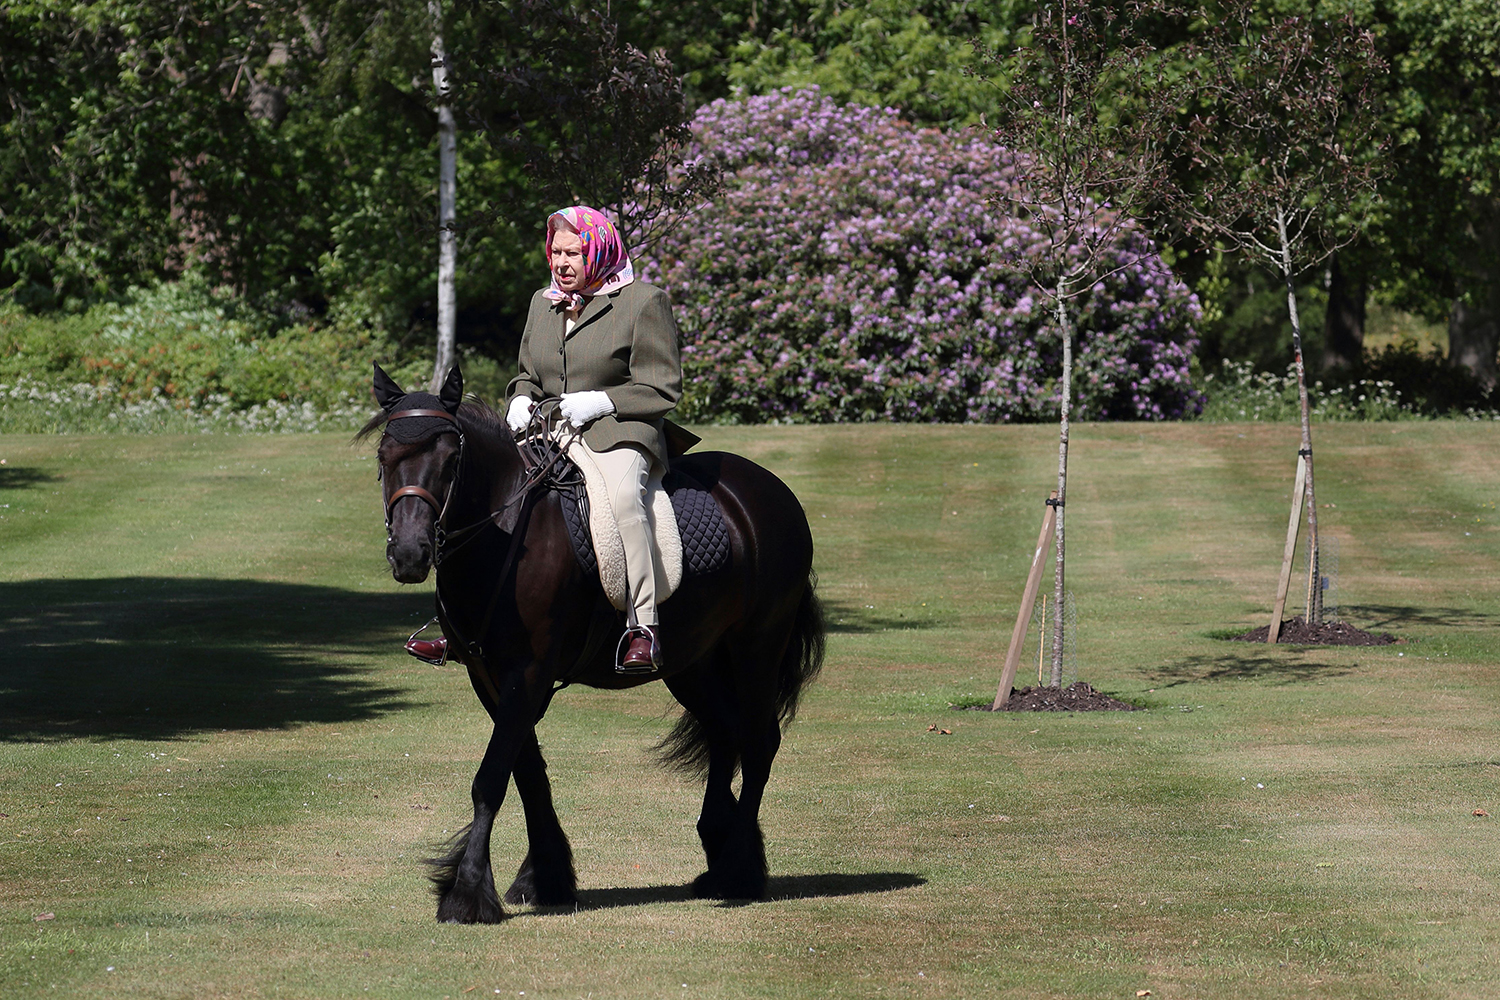 Britain's Queen Elizabeth II rides Balmoral Fern, a 14-year-old Fell Pony, in Windsor Home Park, west of London, over the weekend of May 30-31. According to The Telegraph, it was the first time the queen had been seen since the pandemic lockdown. STEVE PARSONS/POOL/AFP via Getty Images